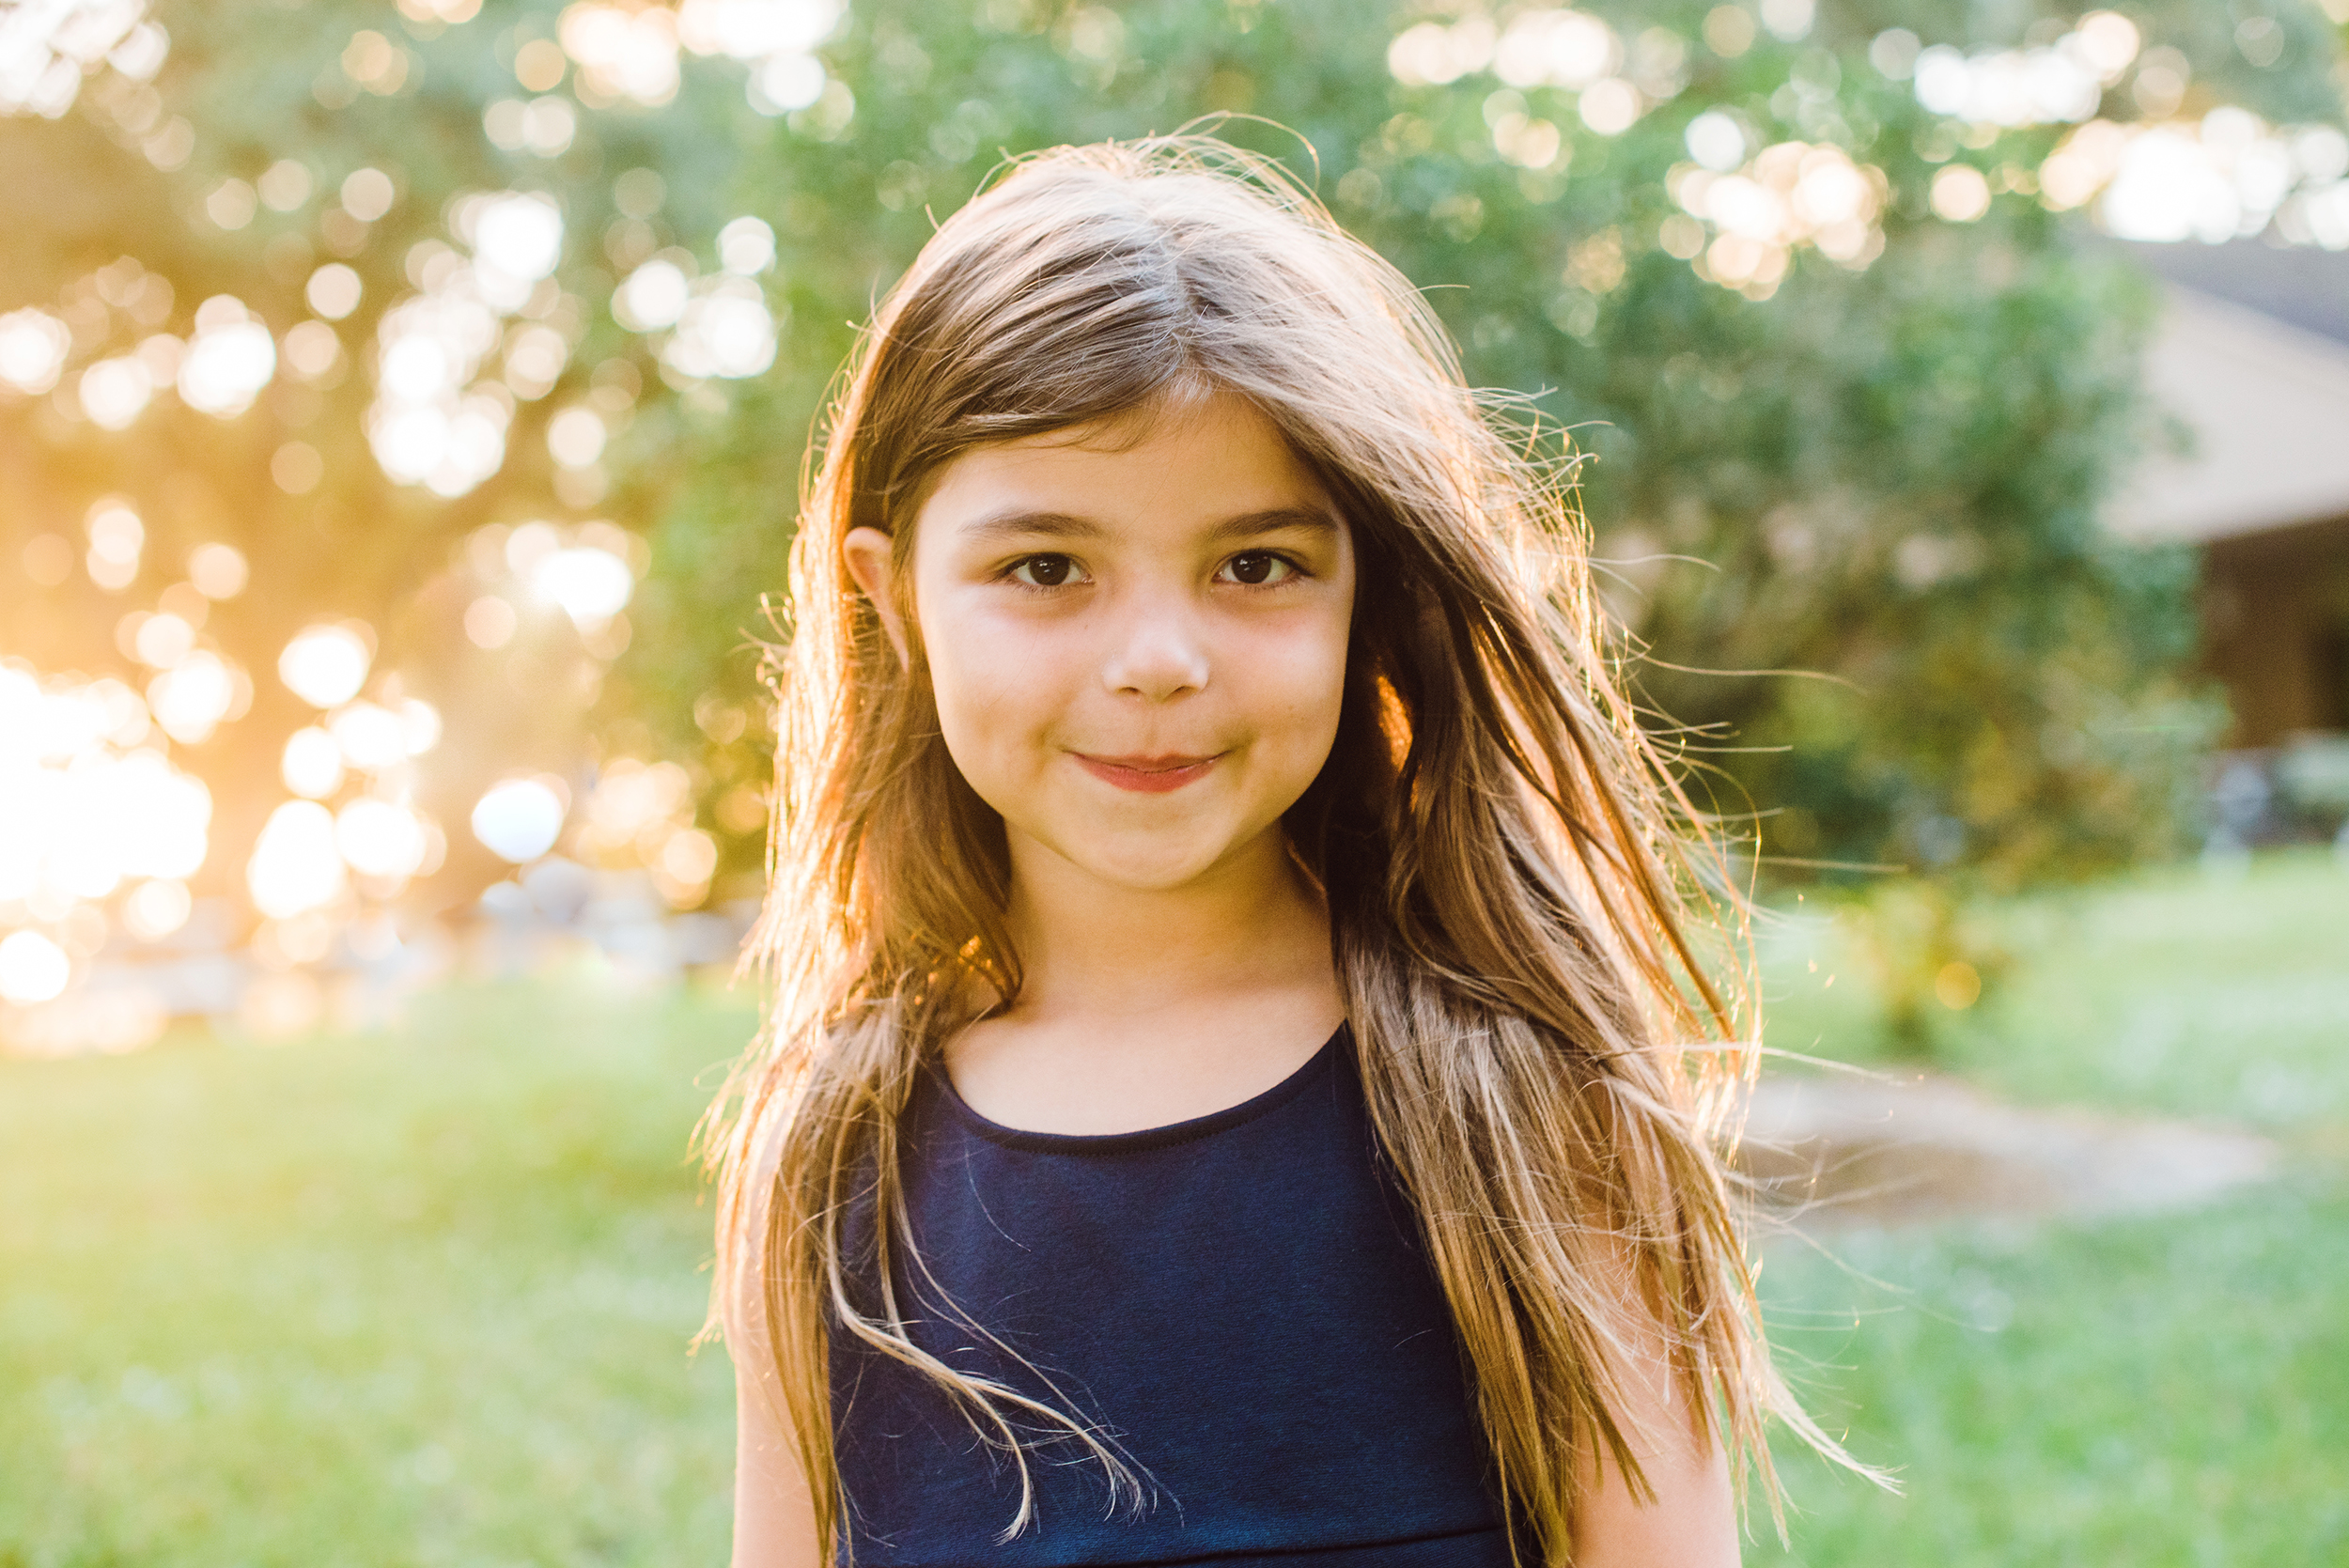 child-photography-south-florida-alison-frank-photography_16.jpg